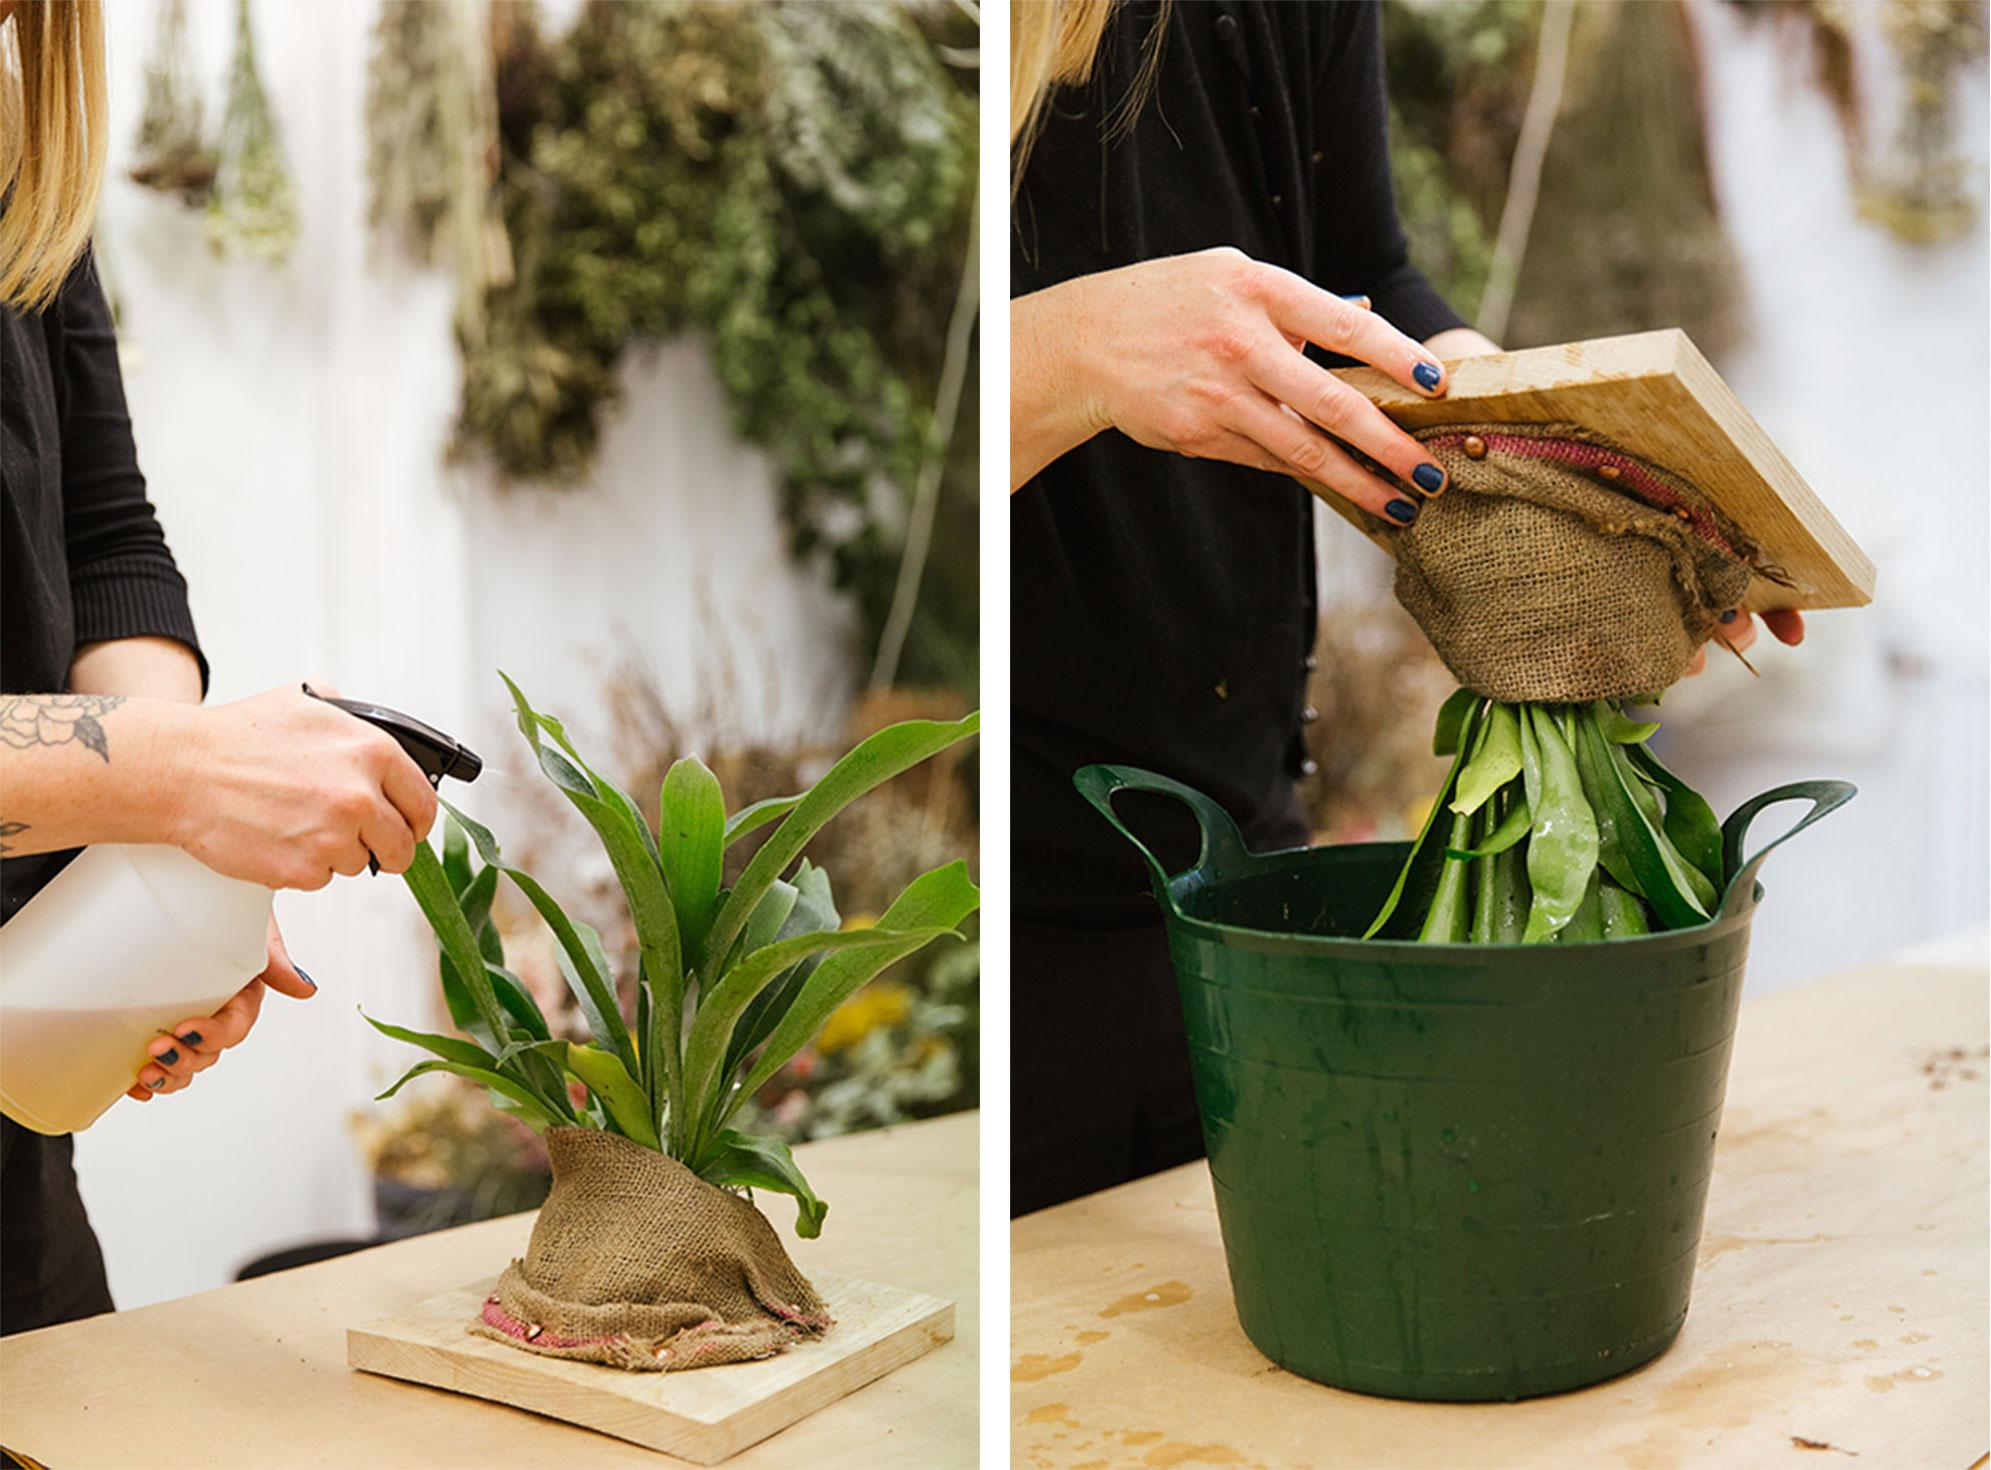 Spray the plants weekly, dunk it in water for 24 hours once a month